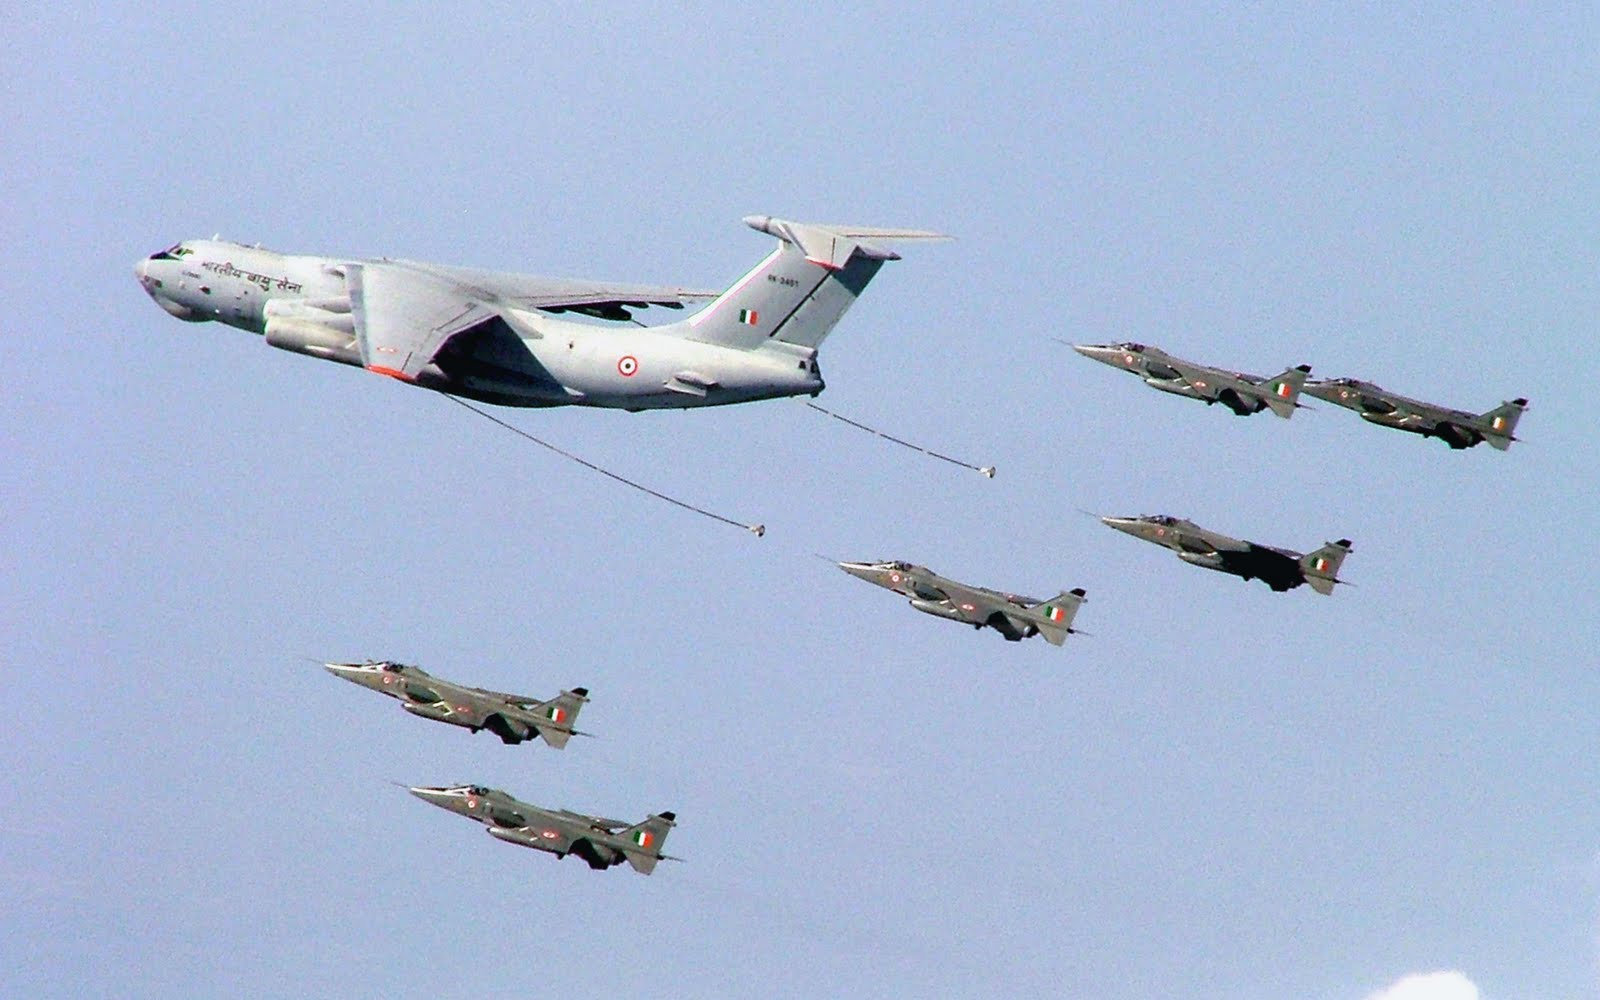 IAF JAGUAR Strike Aircraft lining up to refuel from Ilyushin-78 Midas Tanker.